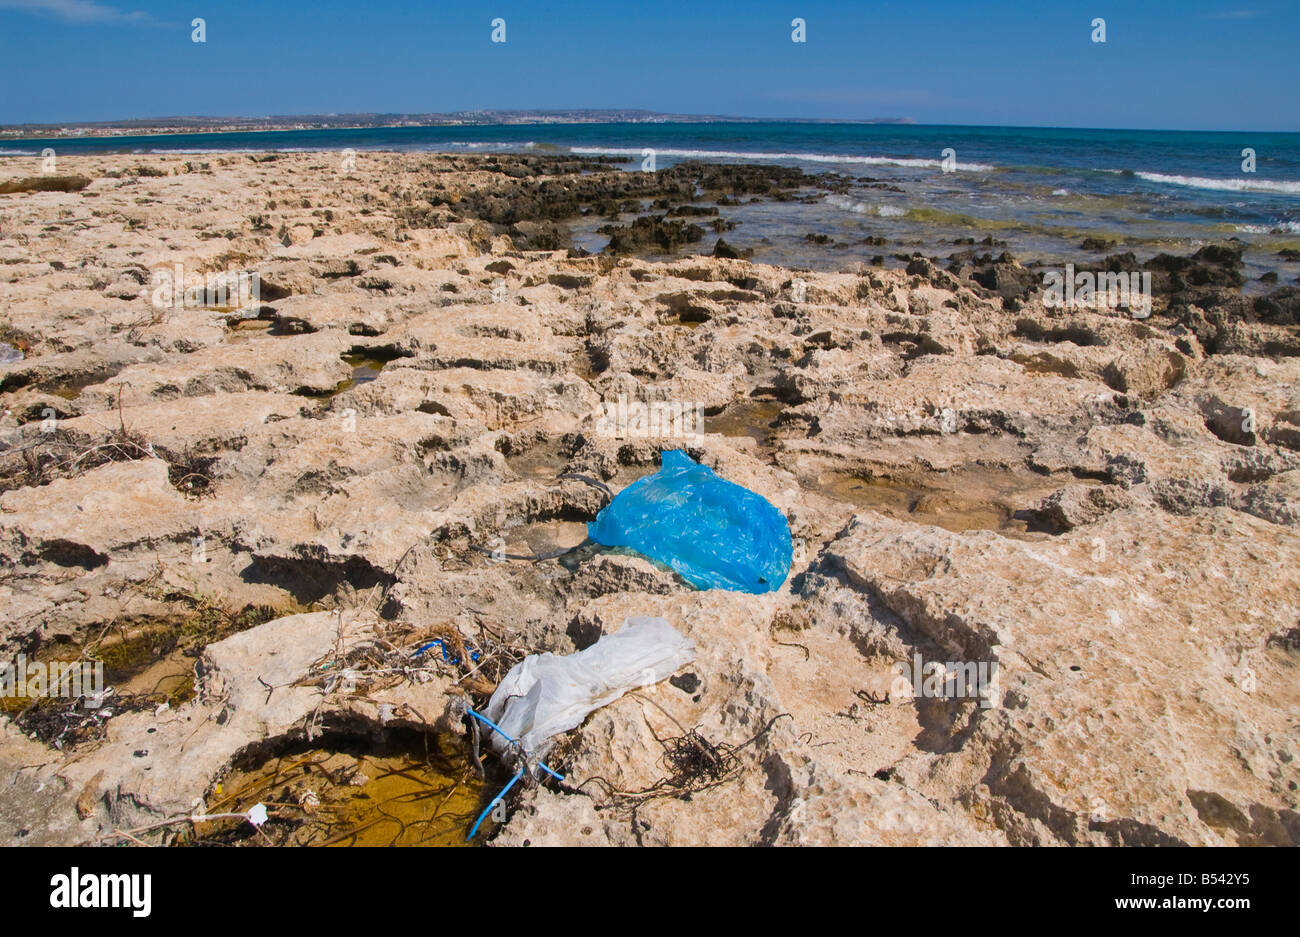 Plastic rubbish dumped on beach near Ayia Napa on the Mediterranean island of Cyprus EU - Stock Image